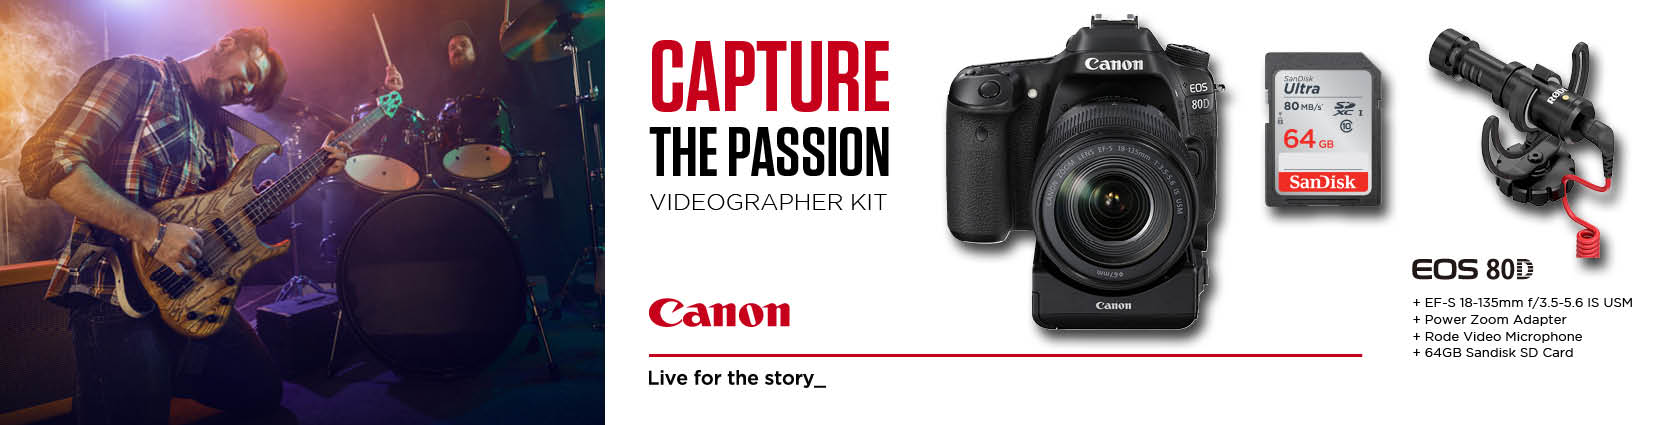 Canon EOS 80D Videography Kit